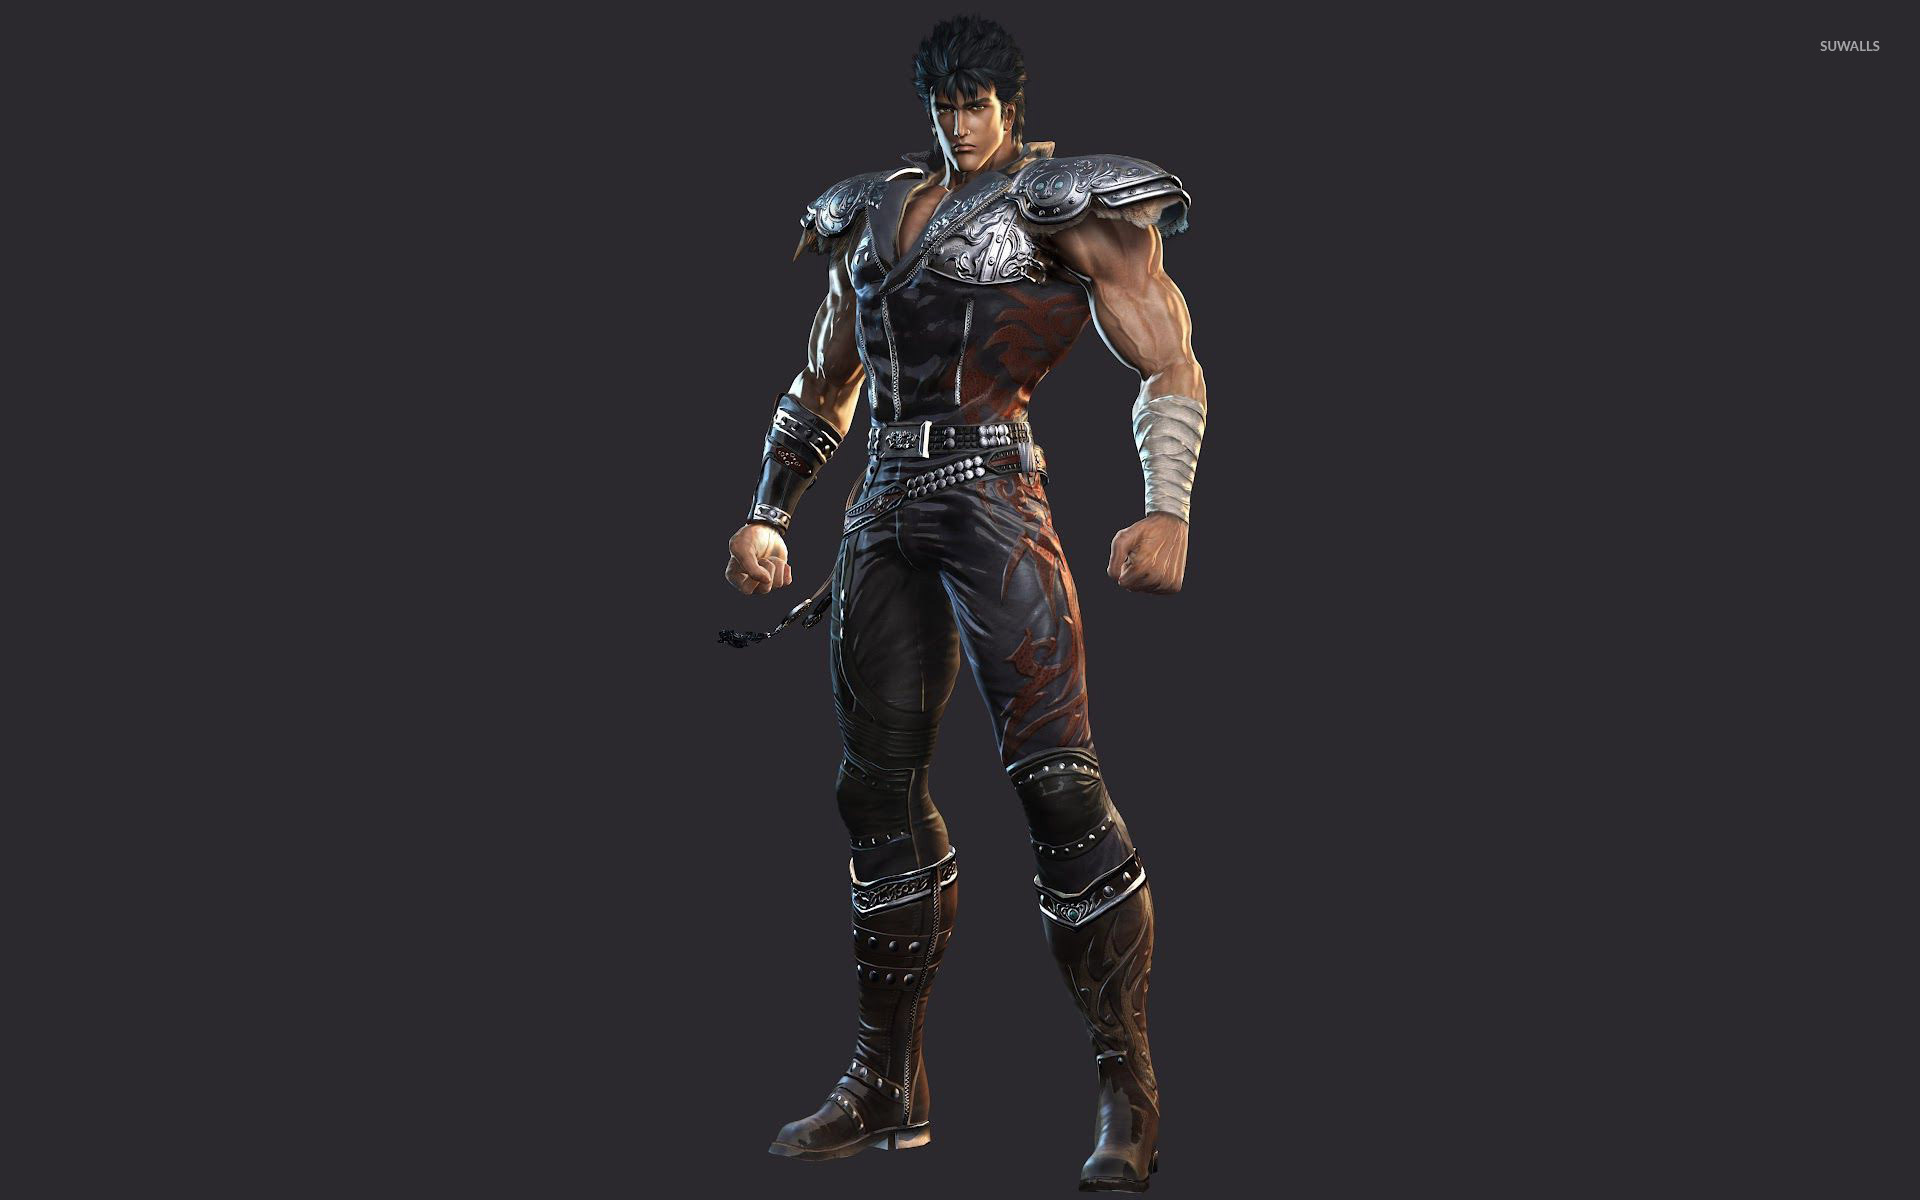 Kenshiro Fist Of The North Star Ken S Rage 2 Wallpaper Anime